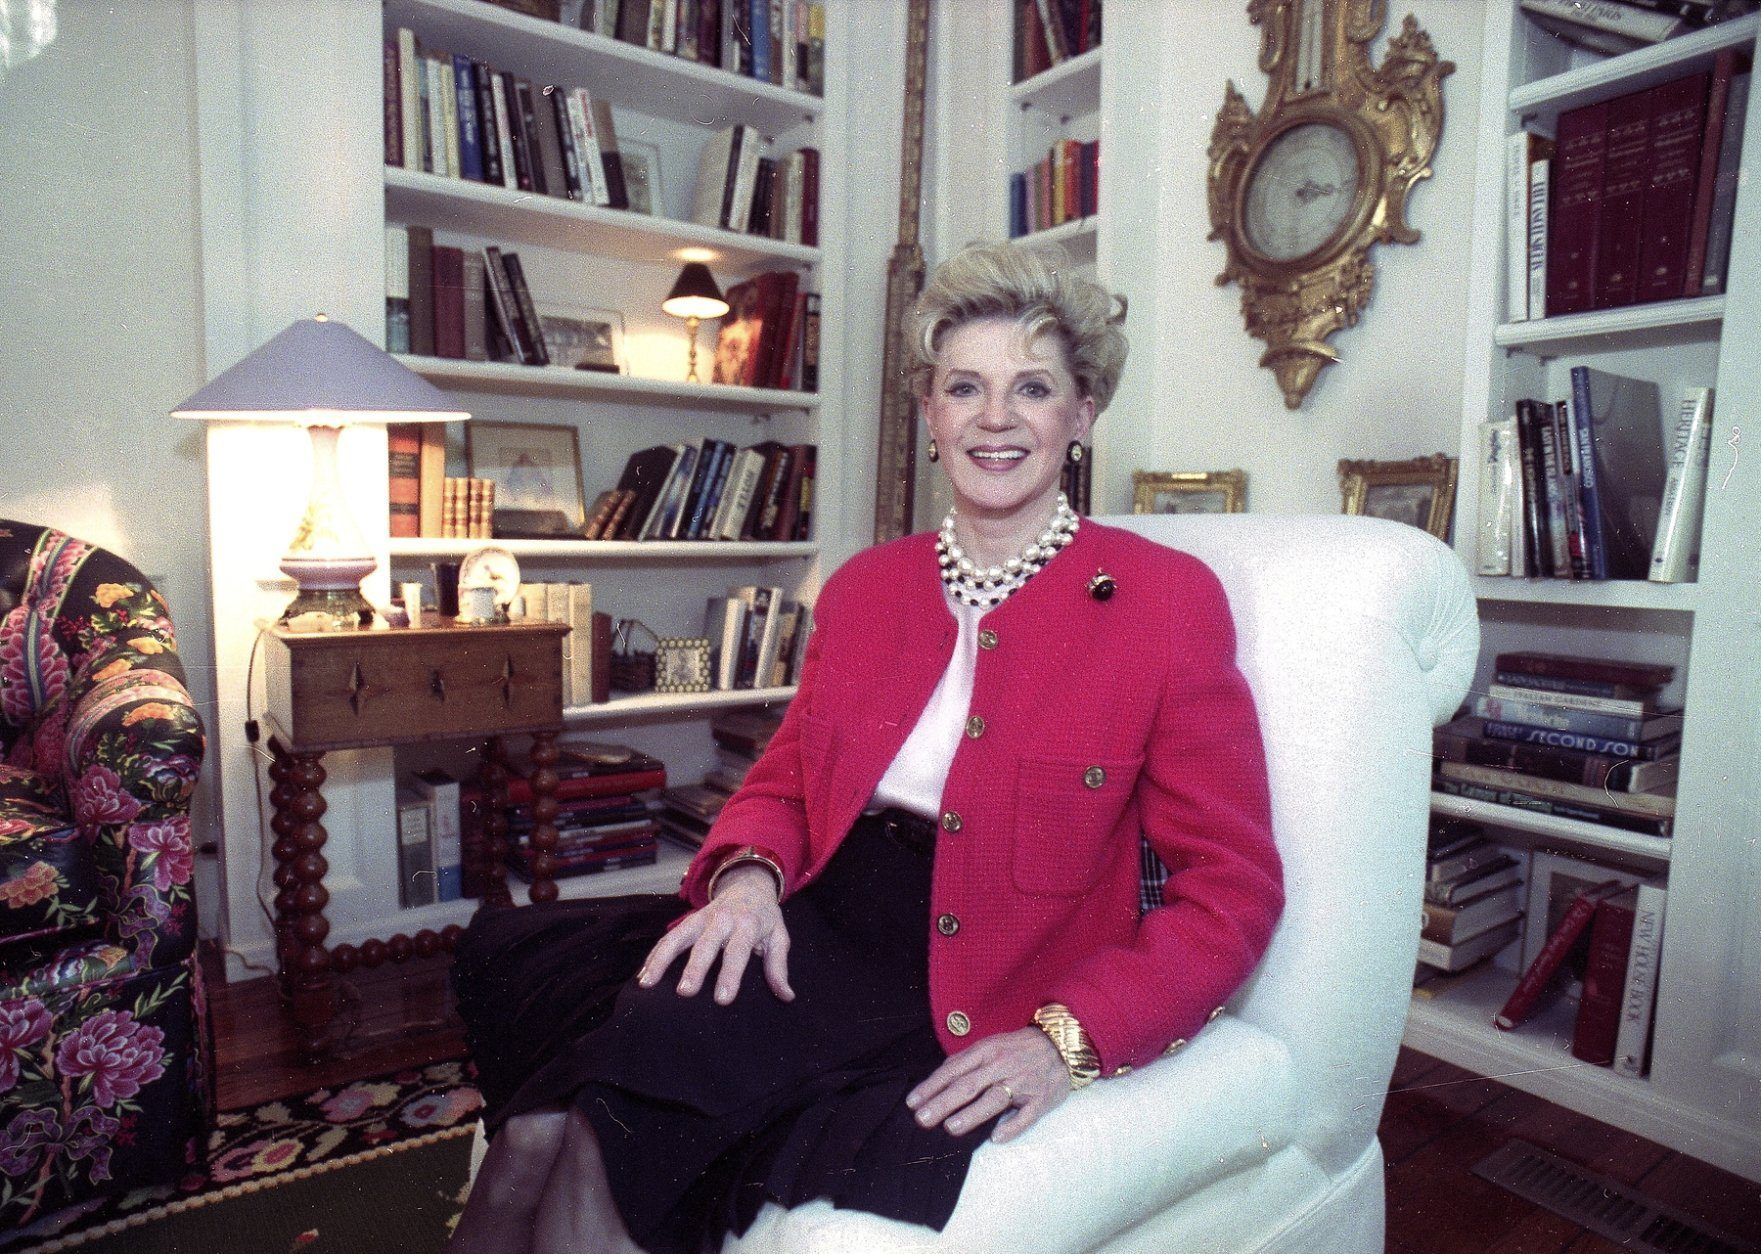 FILE - Judith Krantz, poses in an undated file photo during an interview at her home in the Bel Air section of Los Angeles, Ca. Krantz died Saturday, June 22, 2019 in her Bel Air home od natural causes, said her son Tony Krantz. She was 91. (Deidre Hamill/AP Photo, File)